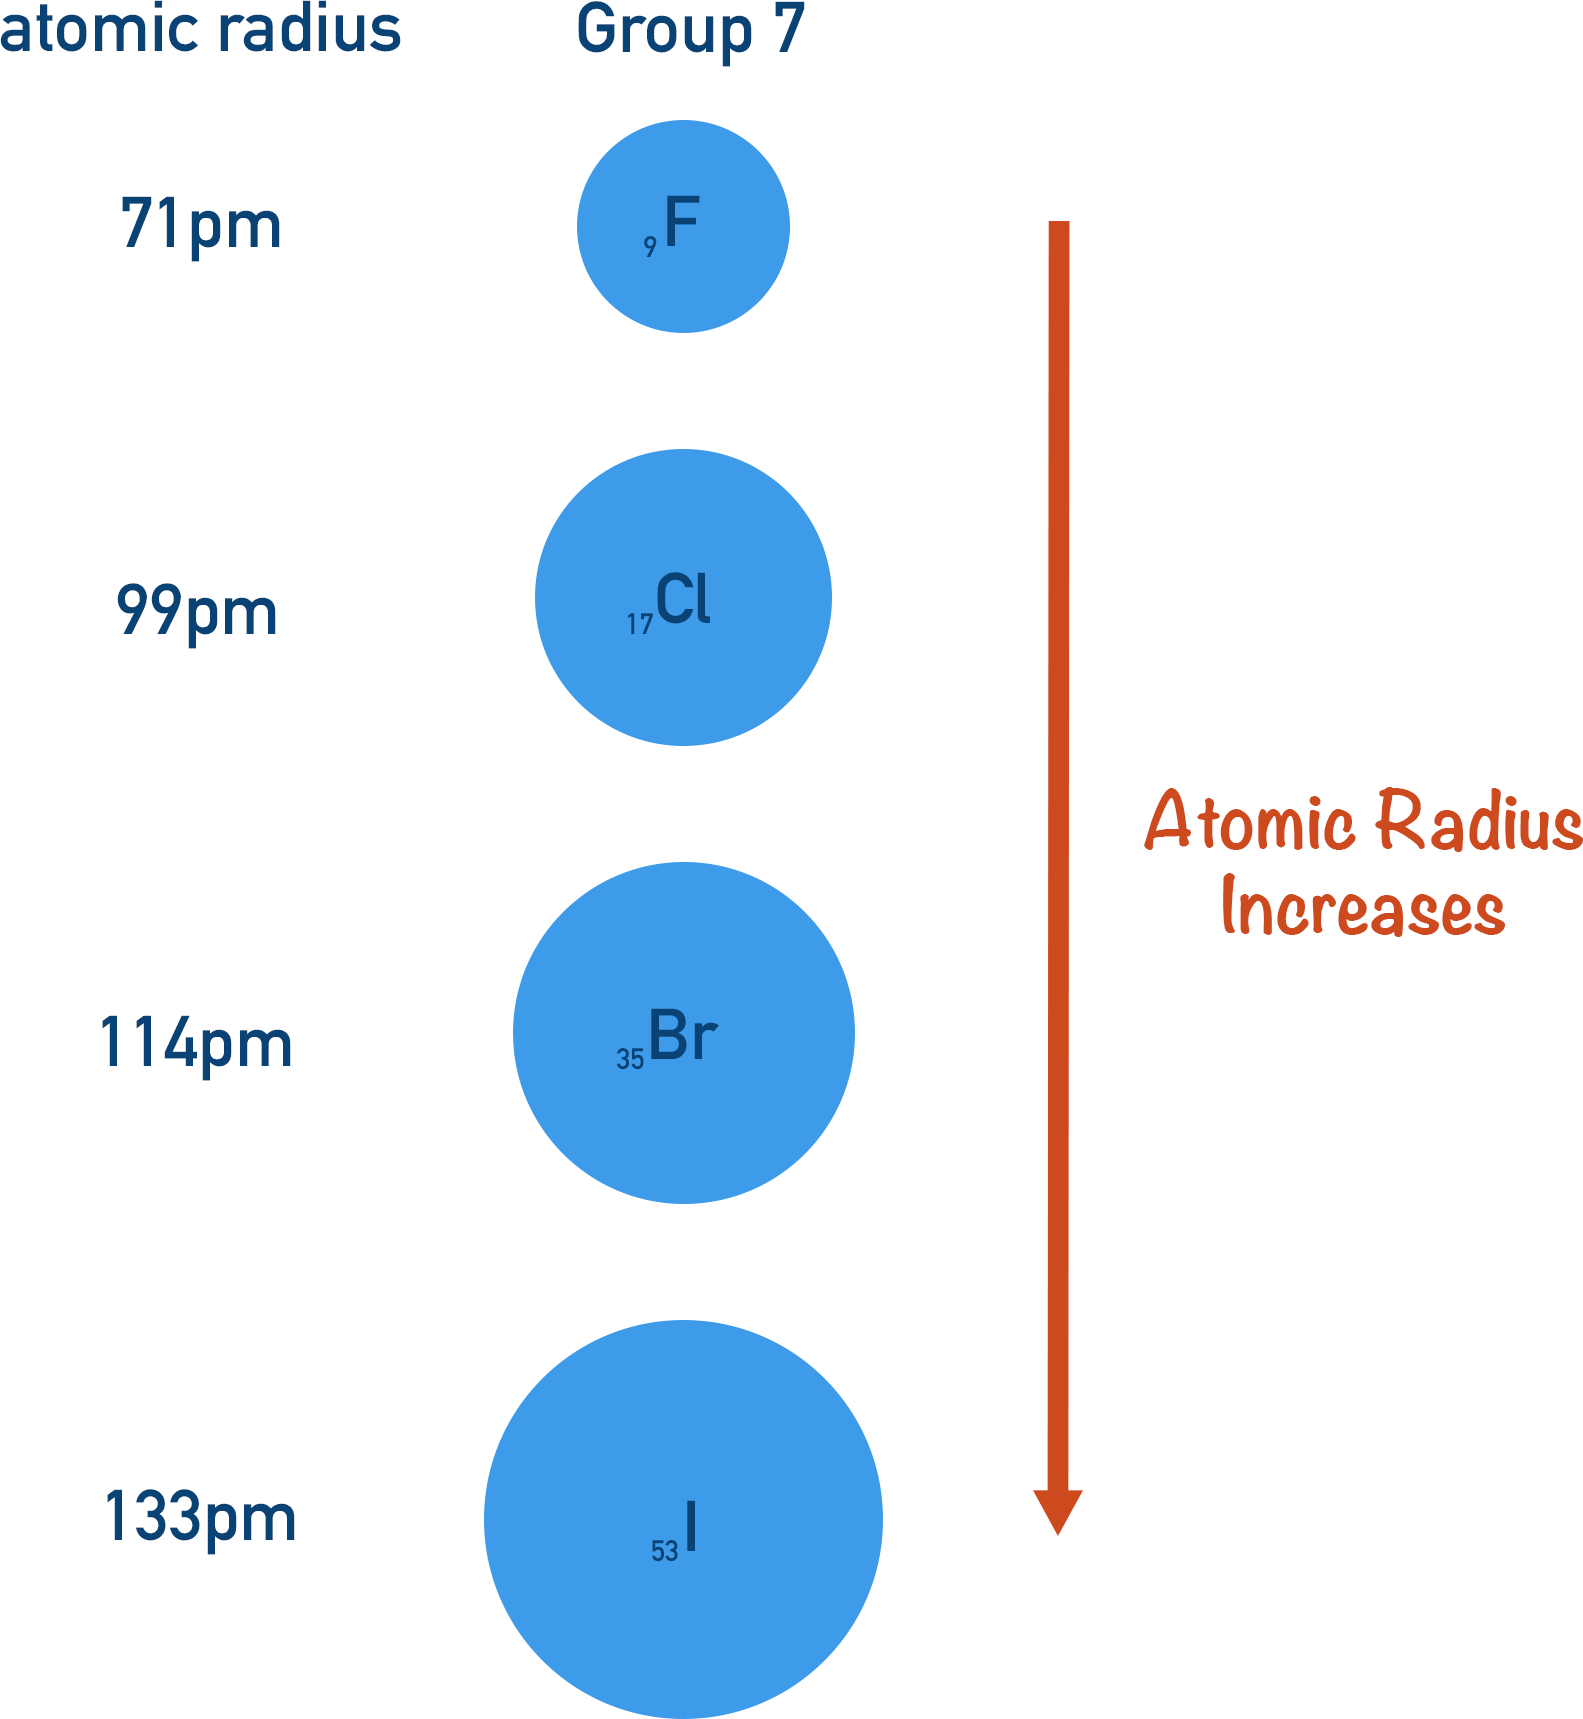 how atomic radius changes down group 7 shielding increase